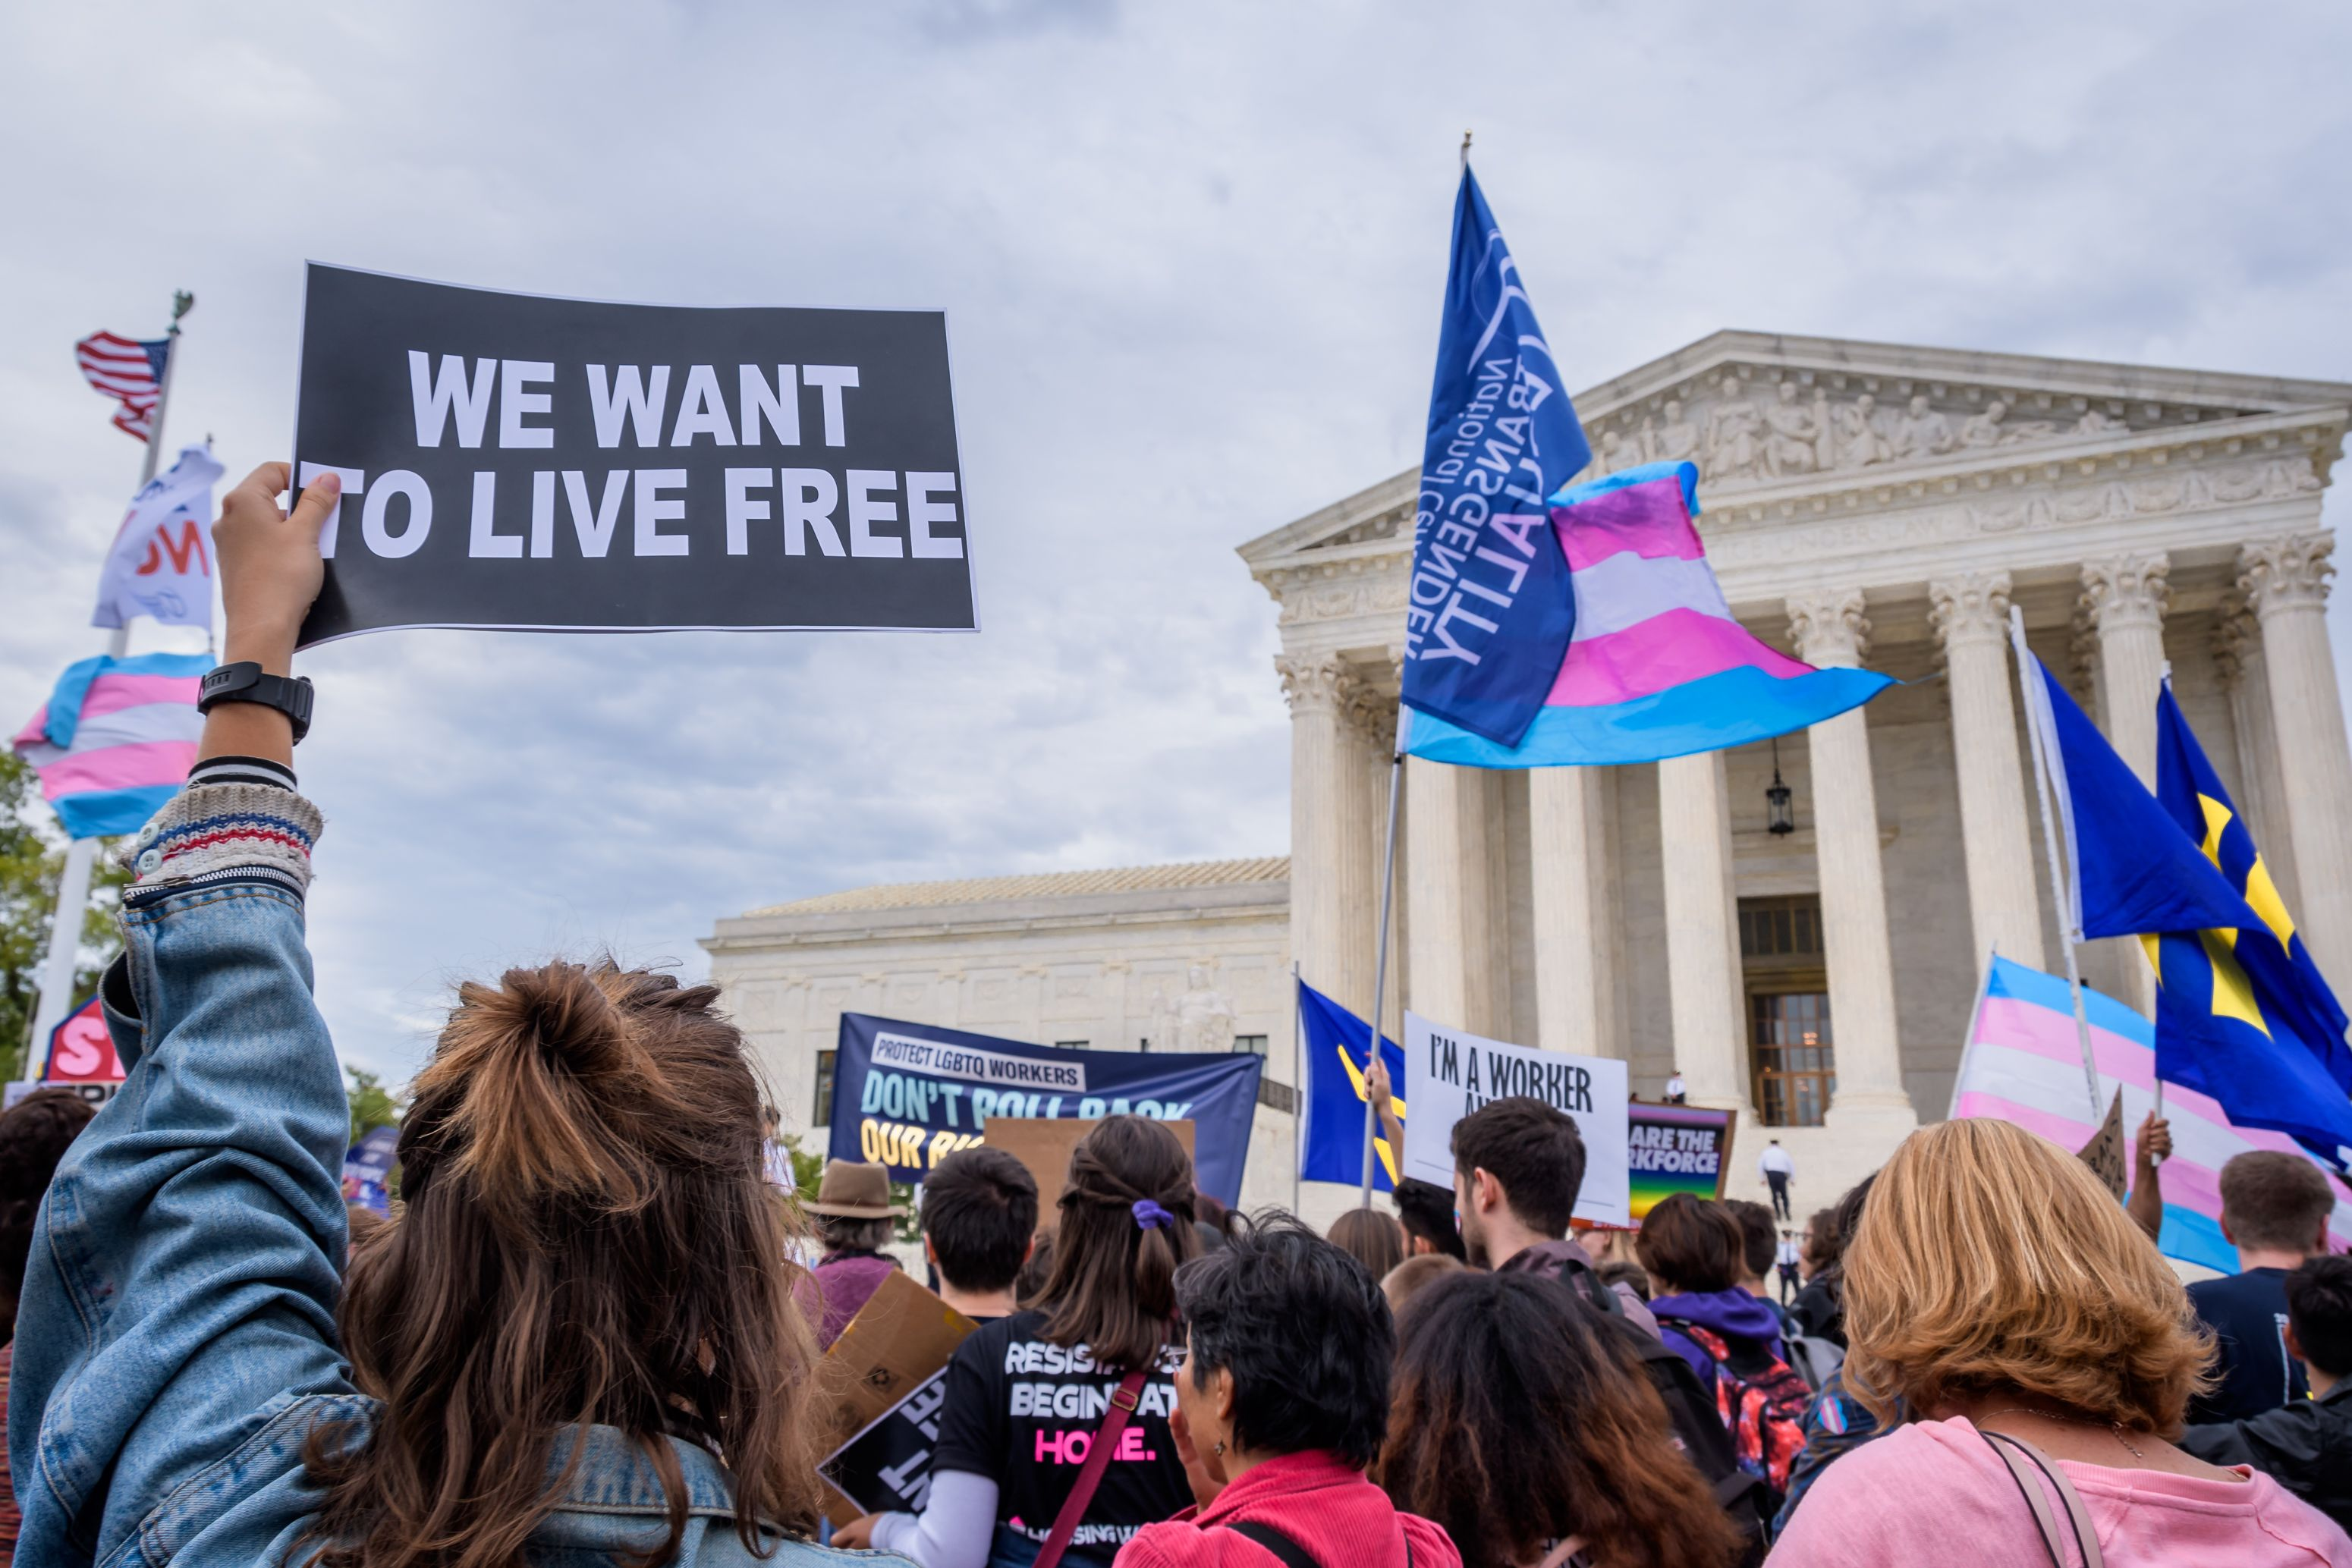 A Supreme Court victory for LGBT rights and the rule of law